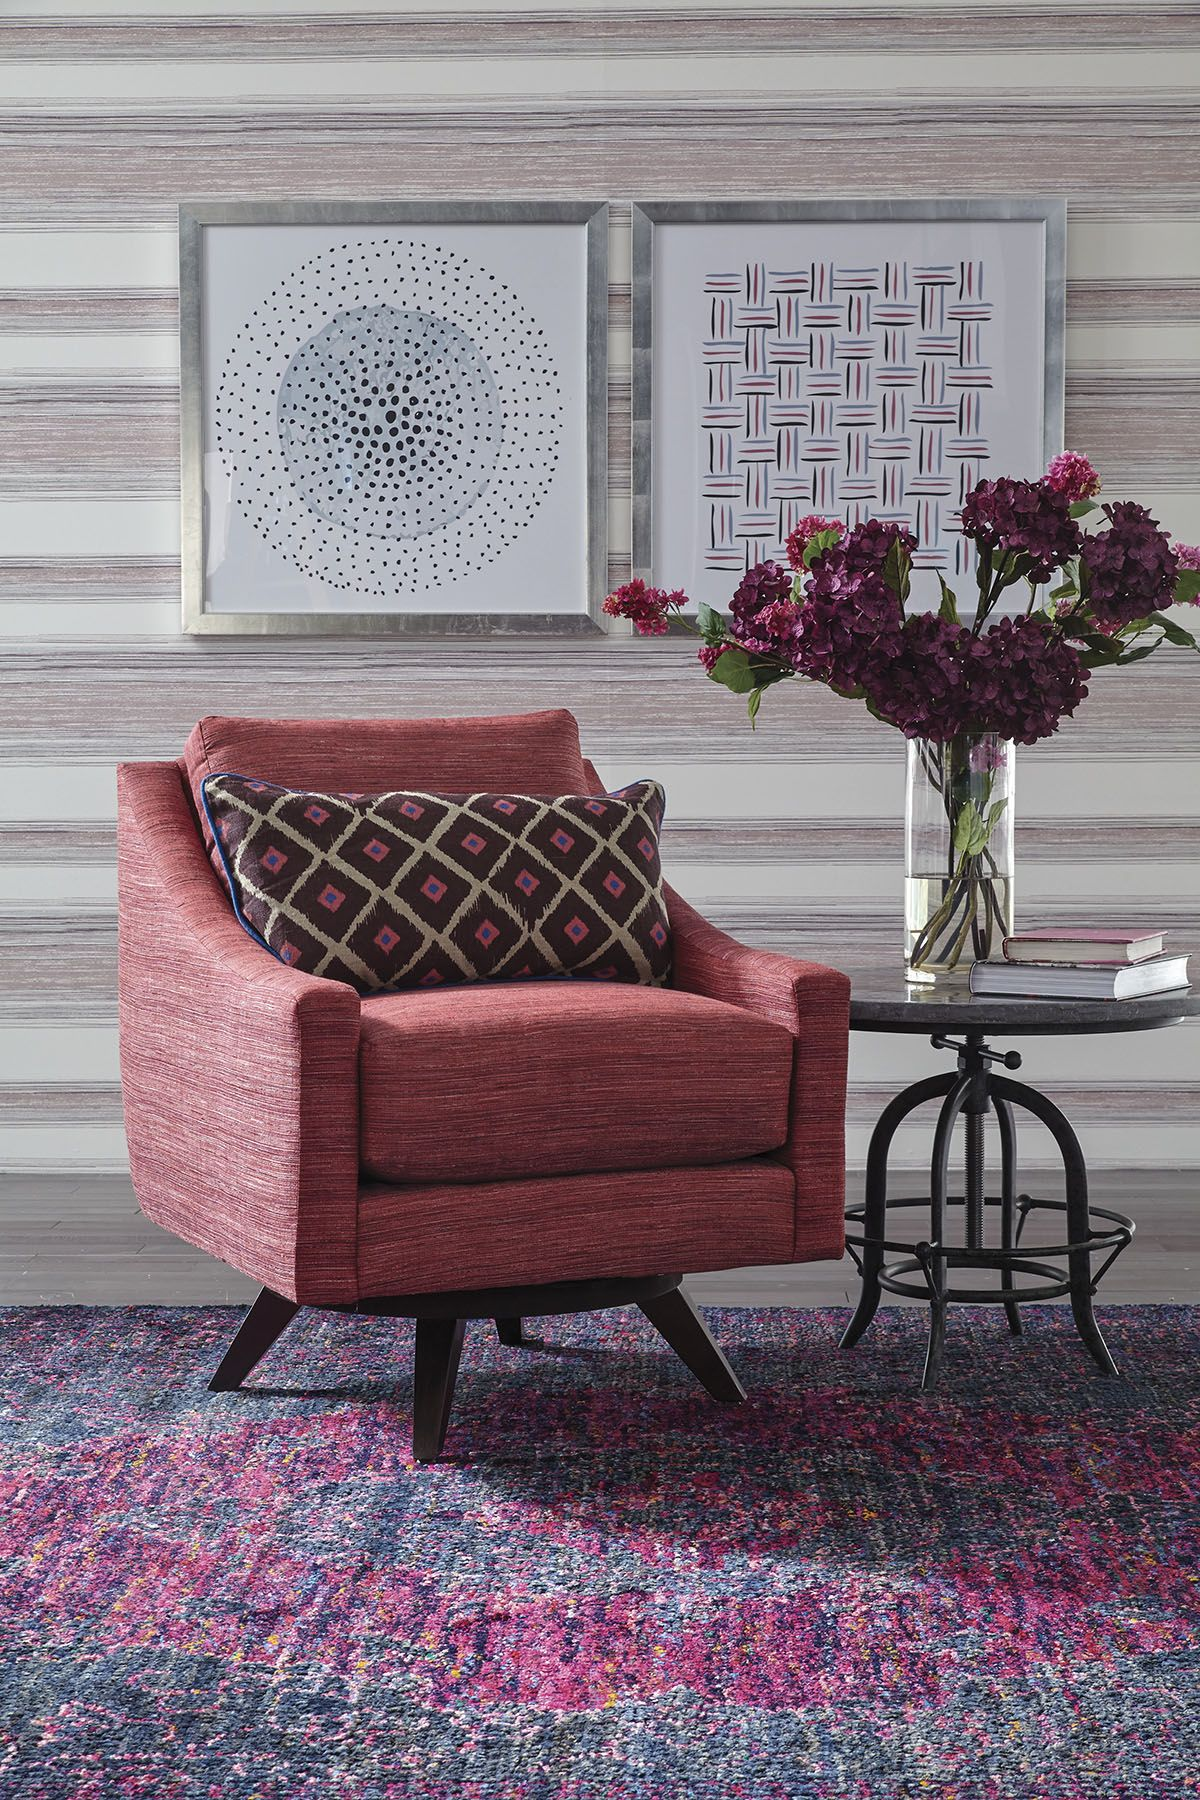 Be Bold With The Bright Pink Astra Swivel Chair